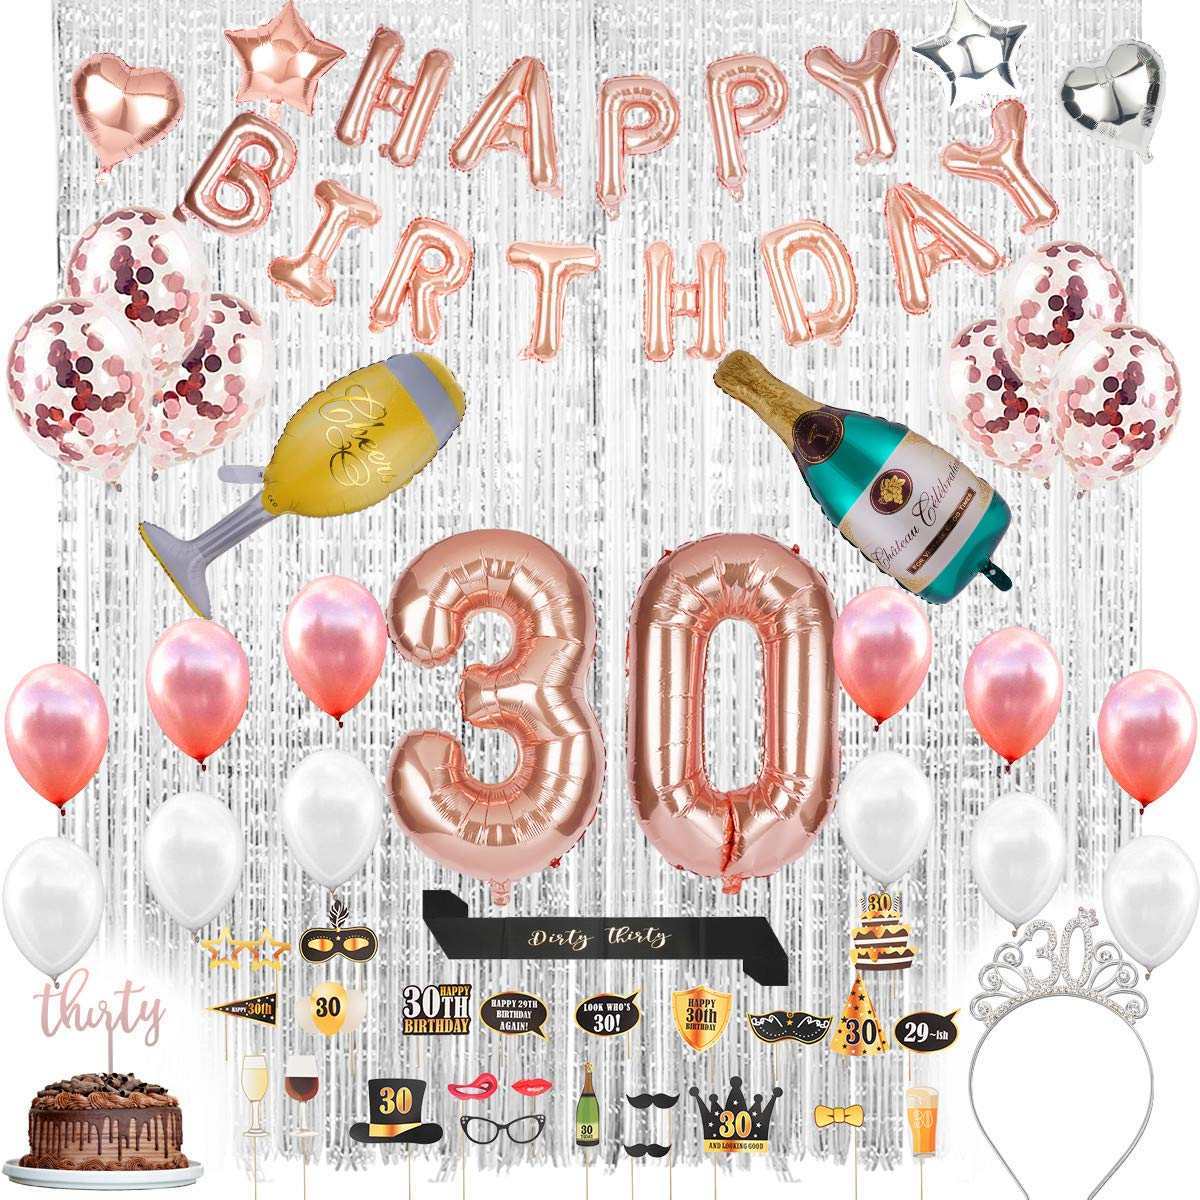 30th Birthday Decorations With Photo Props 30 Birthday Party Supplies 30 Cake Topper Banner 30 Birthday Tiara And Sash Rose Gold Confetti Balloons For Her Silver Curtains Backdrop Props 30th Bday